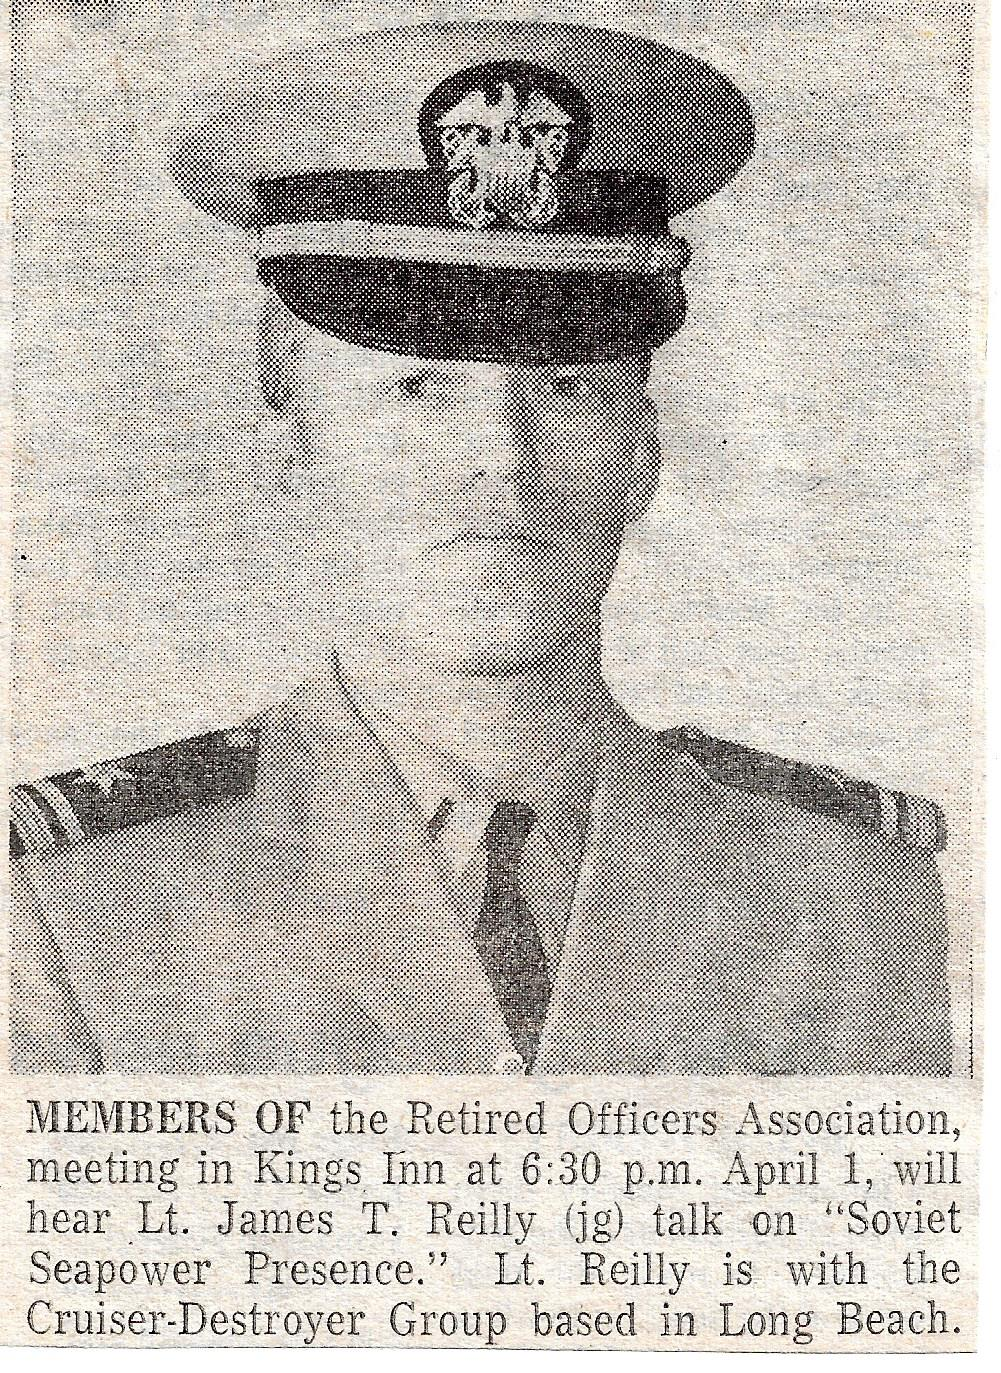 CNO Sea Power News Clipping Sun City CA Retired Officer's Association 700401 First Presentation of Soviet Seapower Presence